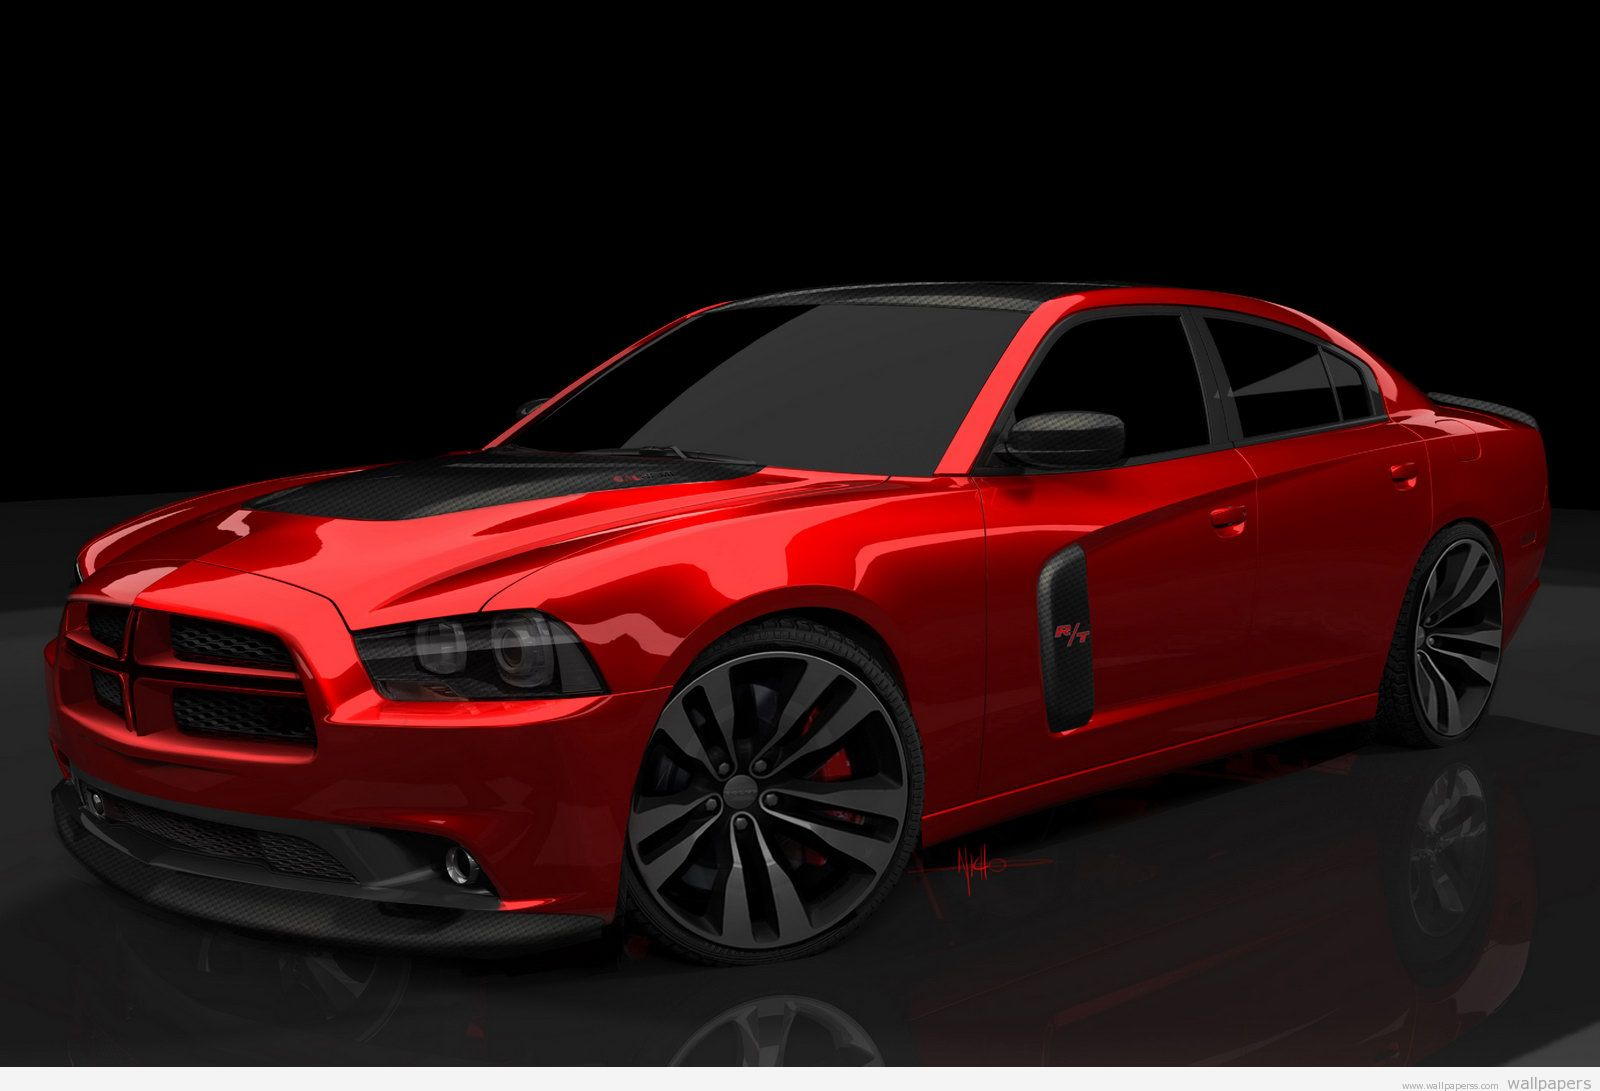 Dodge Charger Wallpapers 4889 Hd Wallpapers in Cars   Imagescicom 1600x1091